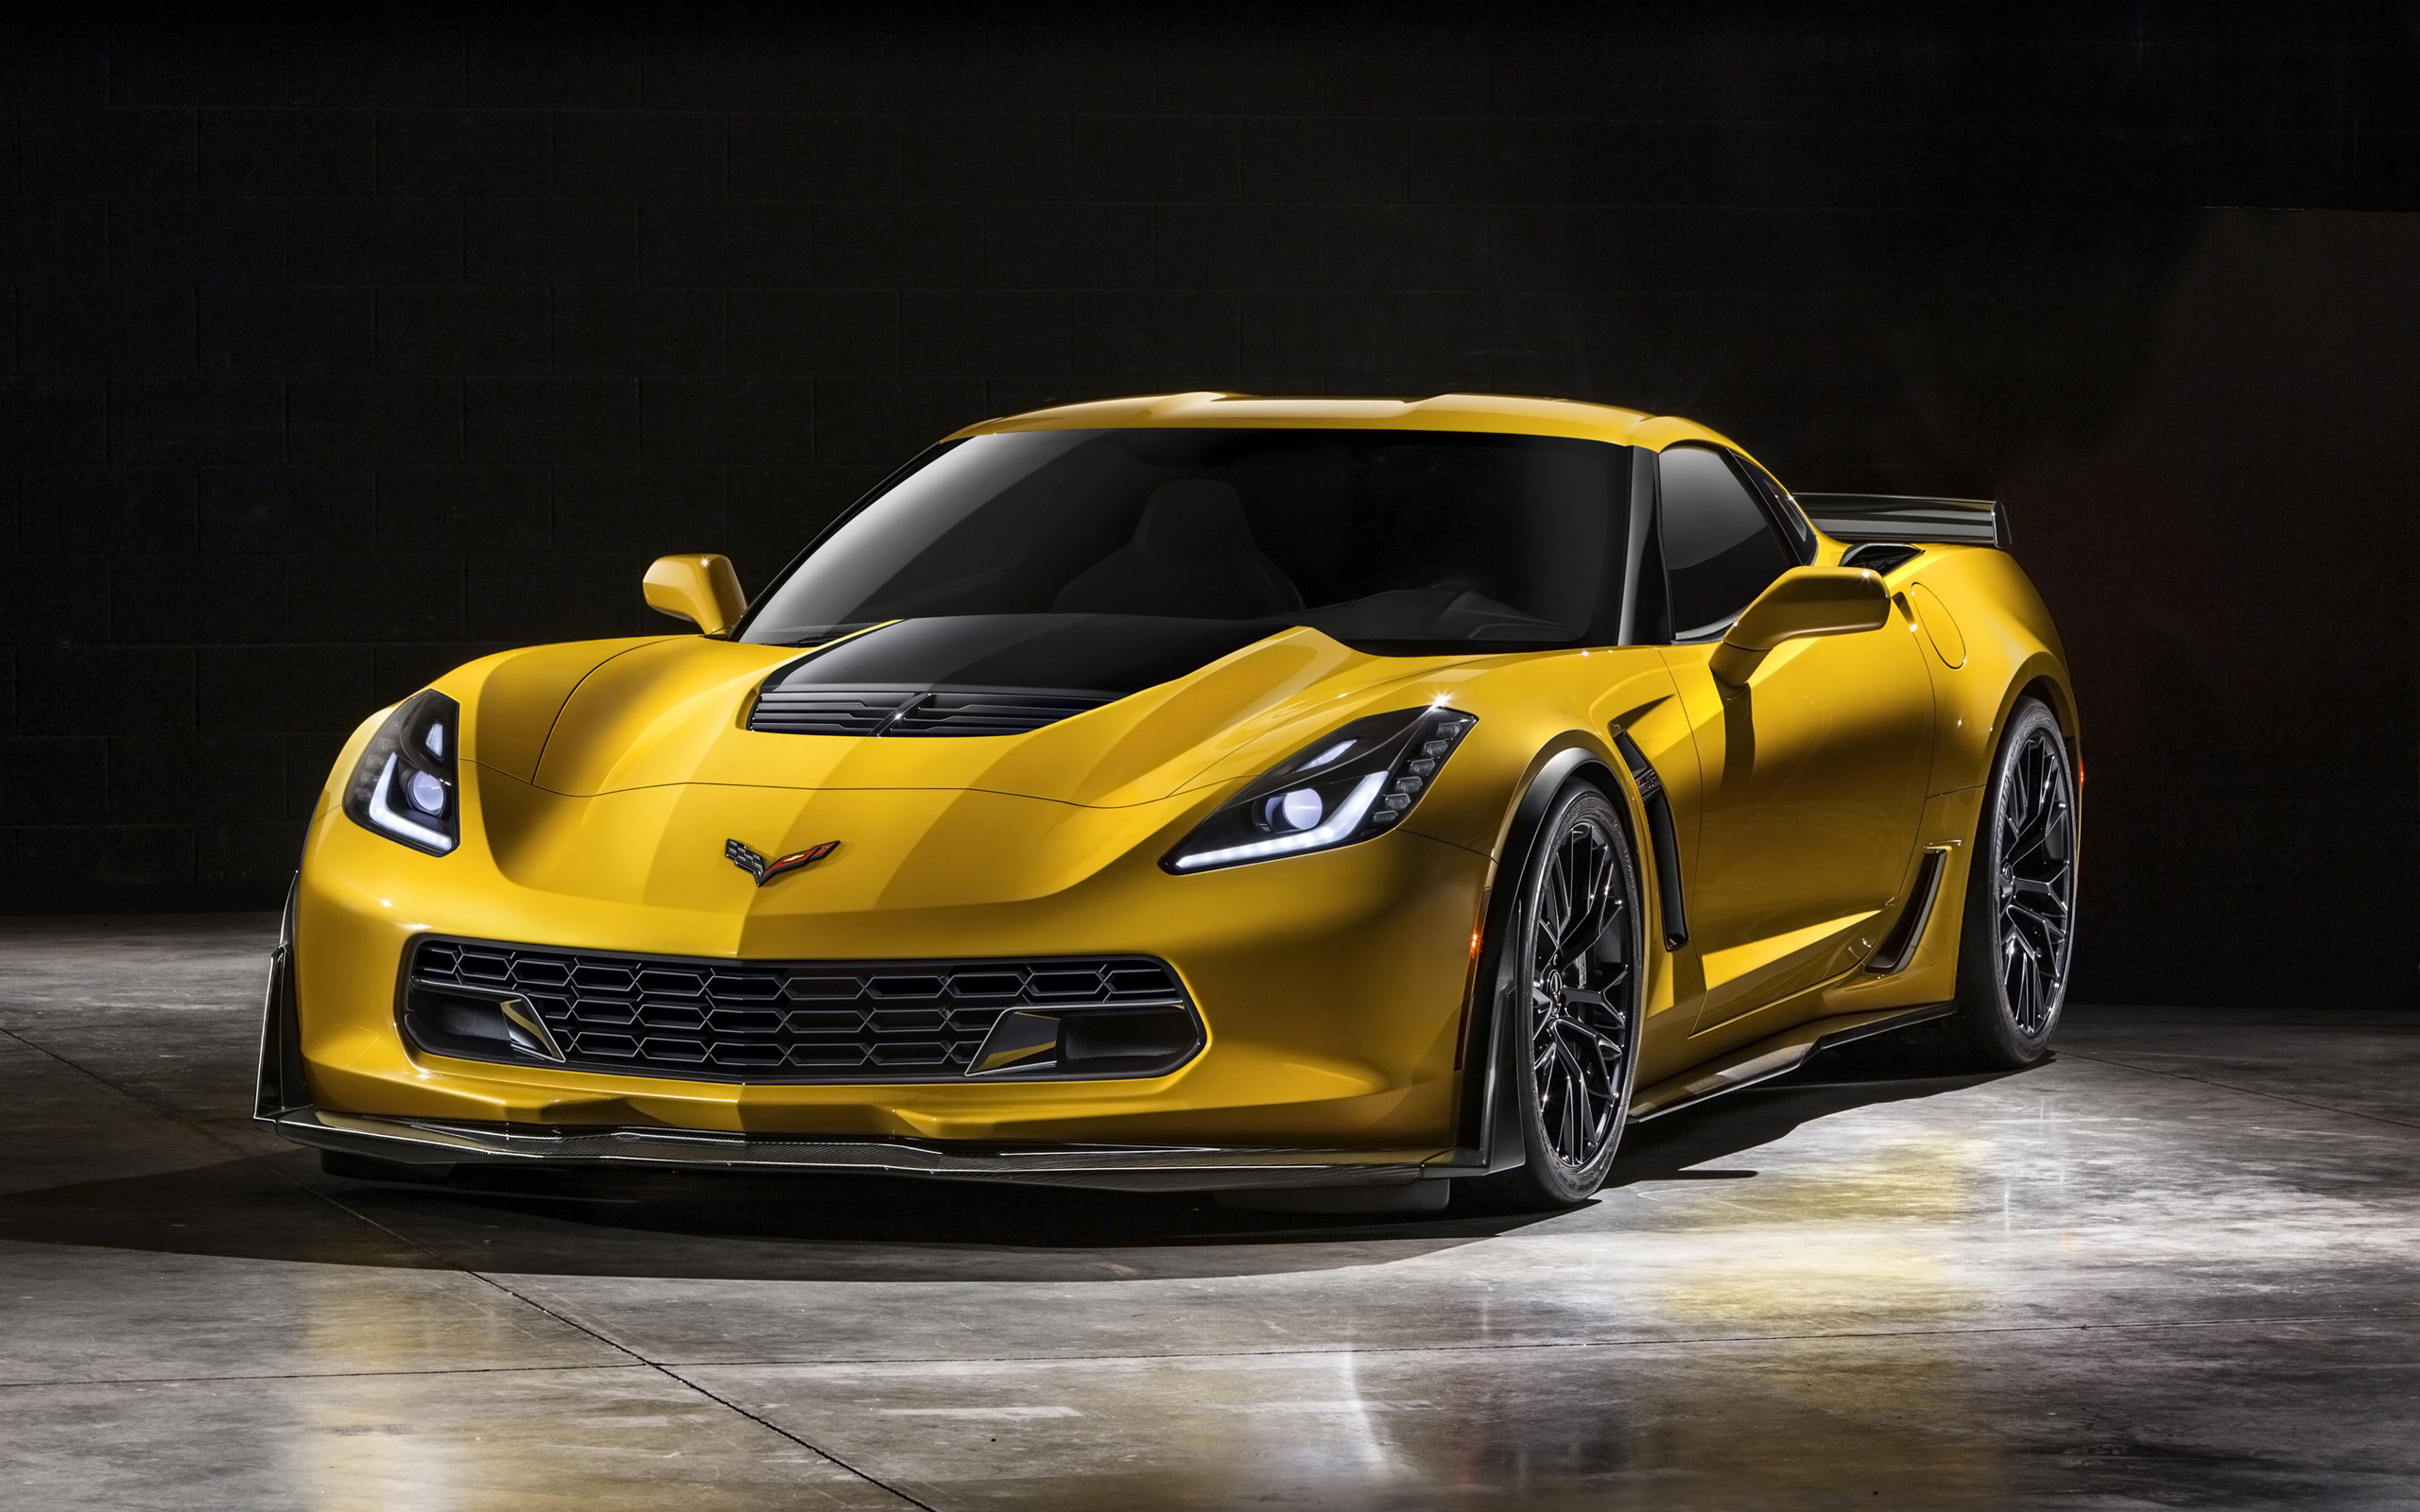 Chevrolet Corvette Z06 2015 1201.38 Kb